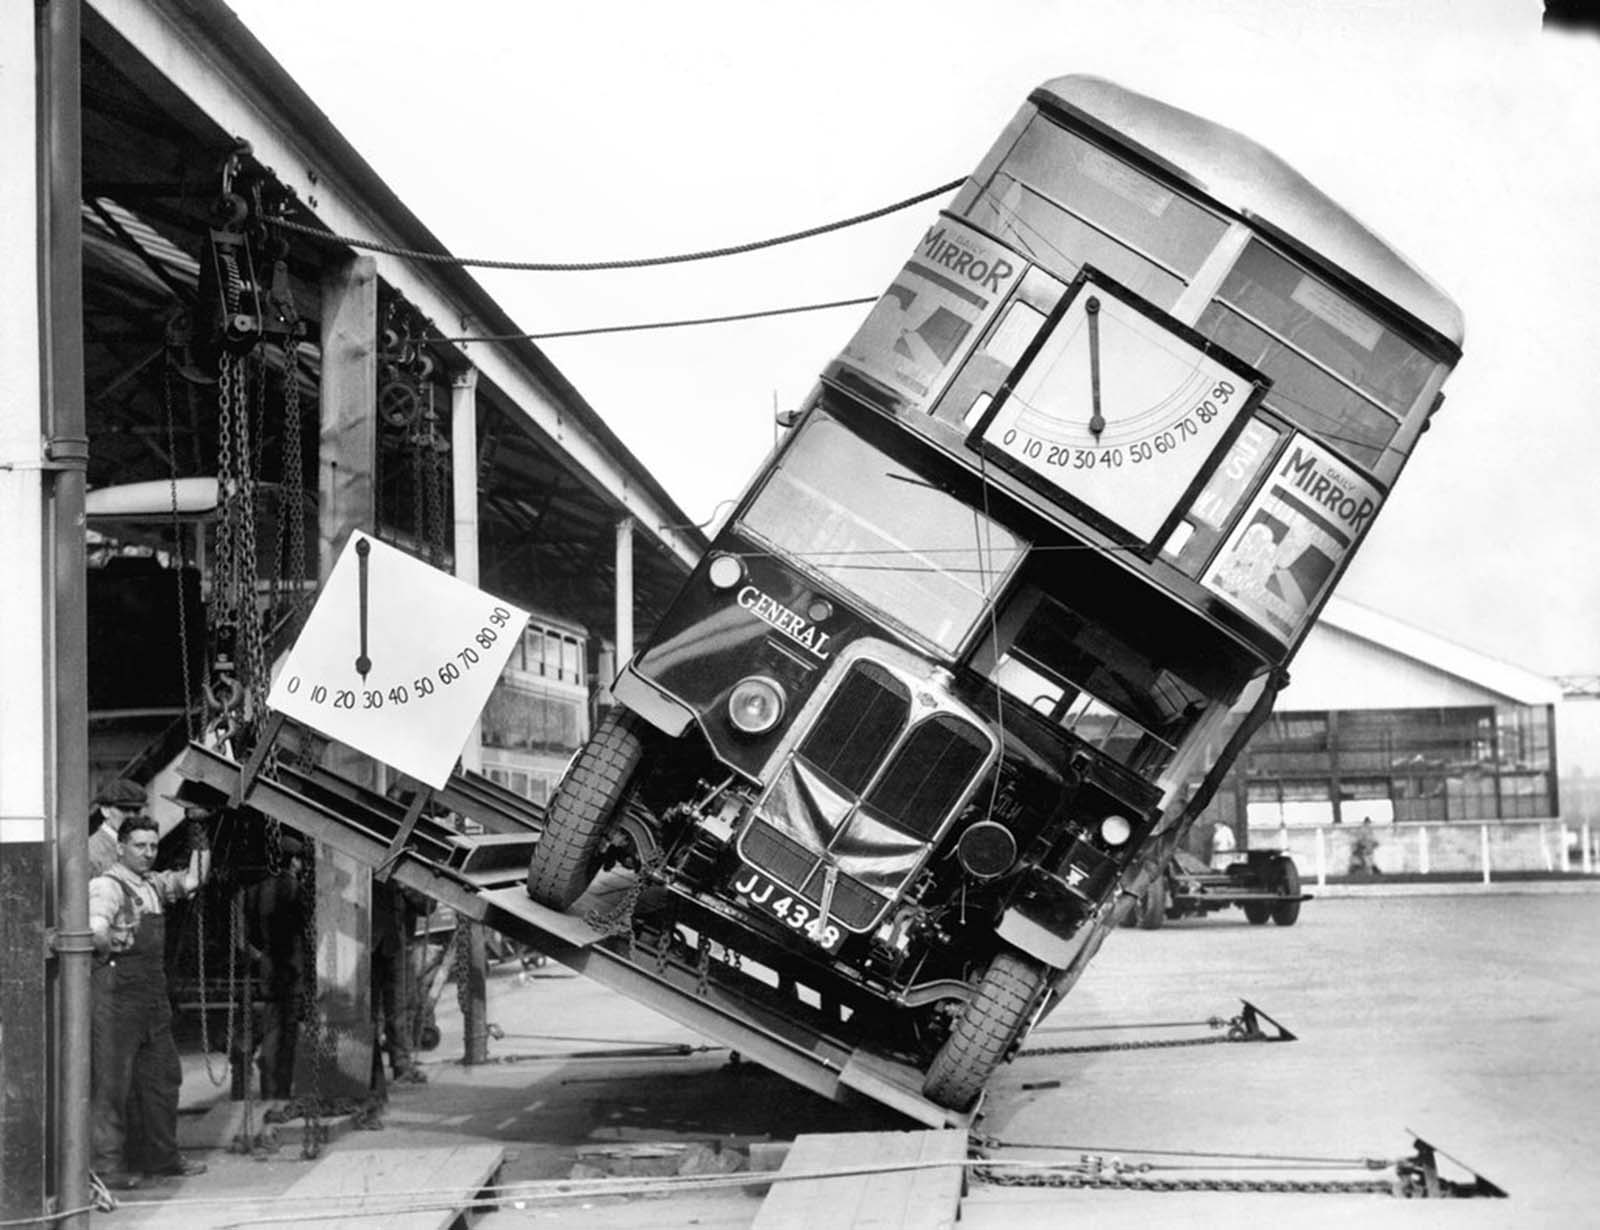 Double-decker bus tilt testing. April, 1933. London.